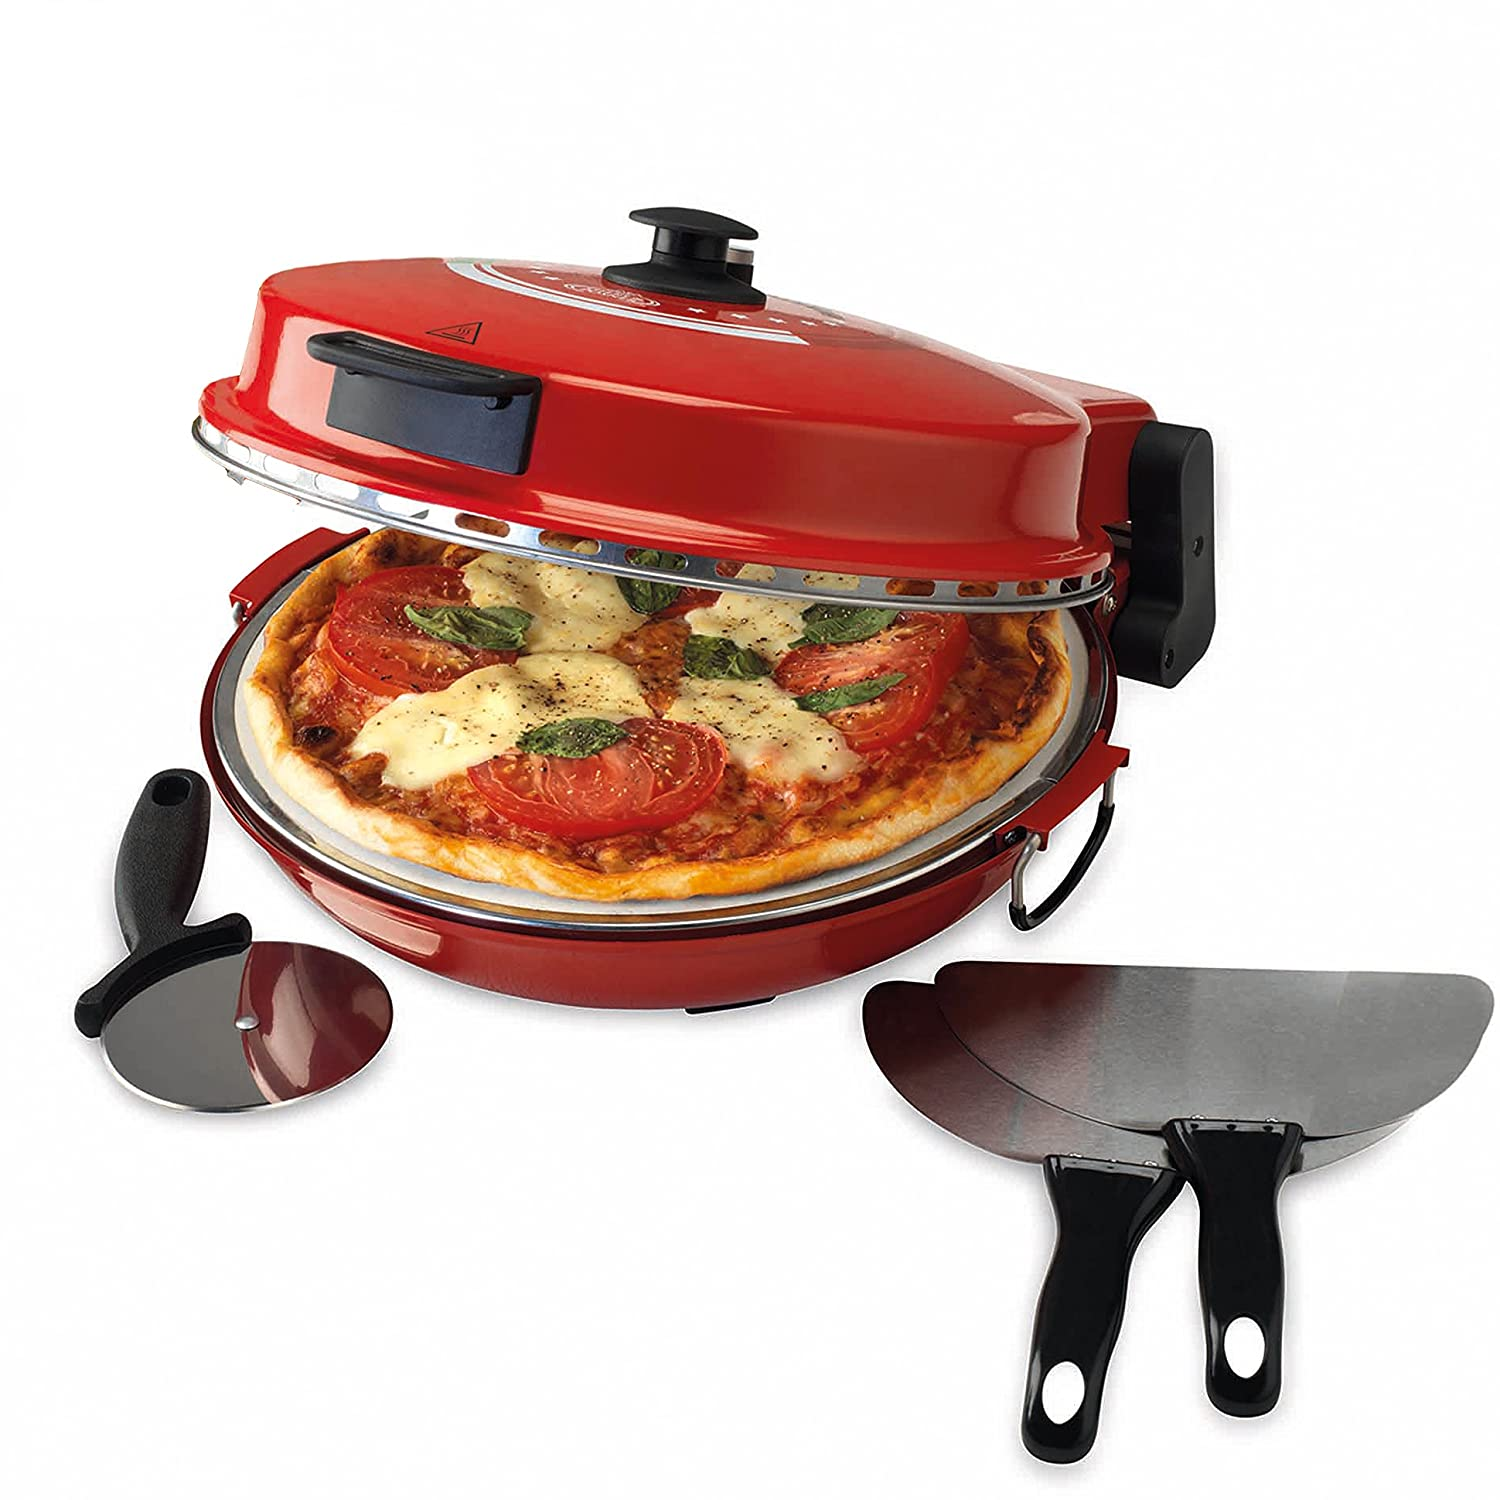 Uncategorized Pizza Makers Specialty Kitchen Appliances giles posner ek2309 italian stone baked bella pizza maker oven 1200 w red amazon co uk kitchen home